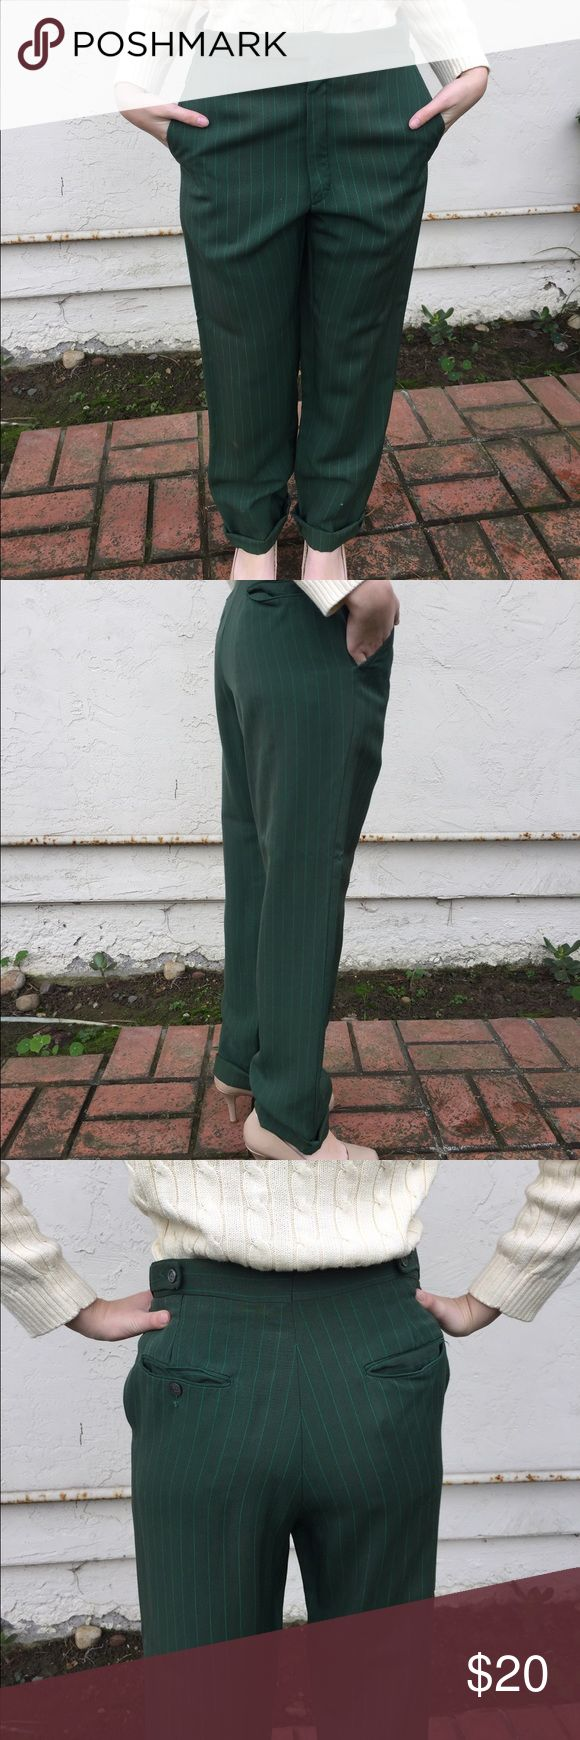 Ladies dark green slacks Women's dark green pinstriped slacks. Two front and two back pockets, cuffed pant legs. High waist, straight leg. Dark green with lighter green pinstripes. Button, zipper, and hook fastener. Great work pant. No tag, so no idea brand, size is probably 4-6, as the model in pics is size 2 and they were loose on her. Pants Trousers